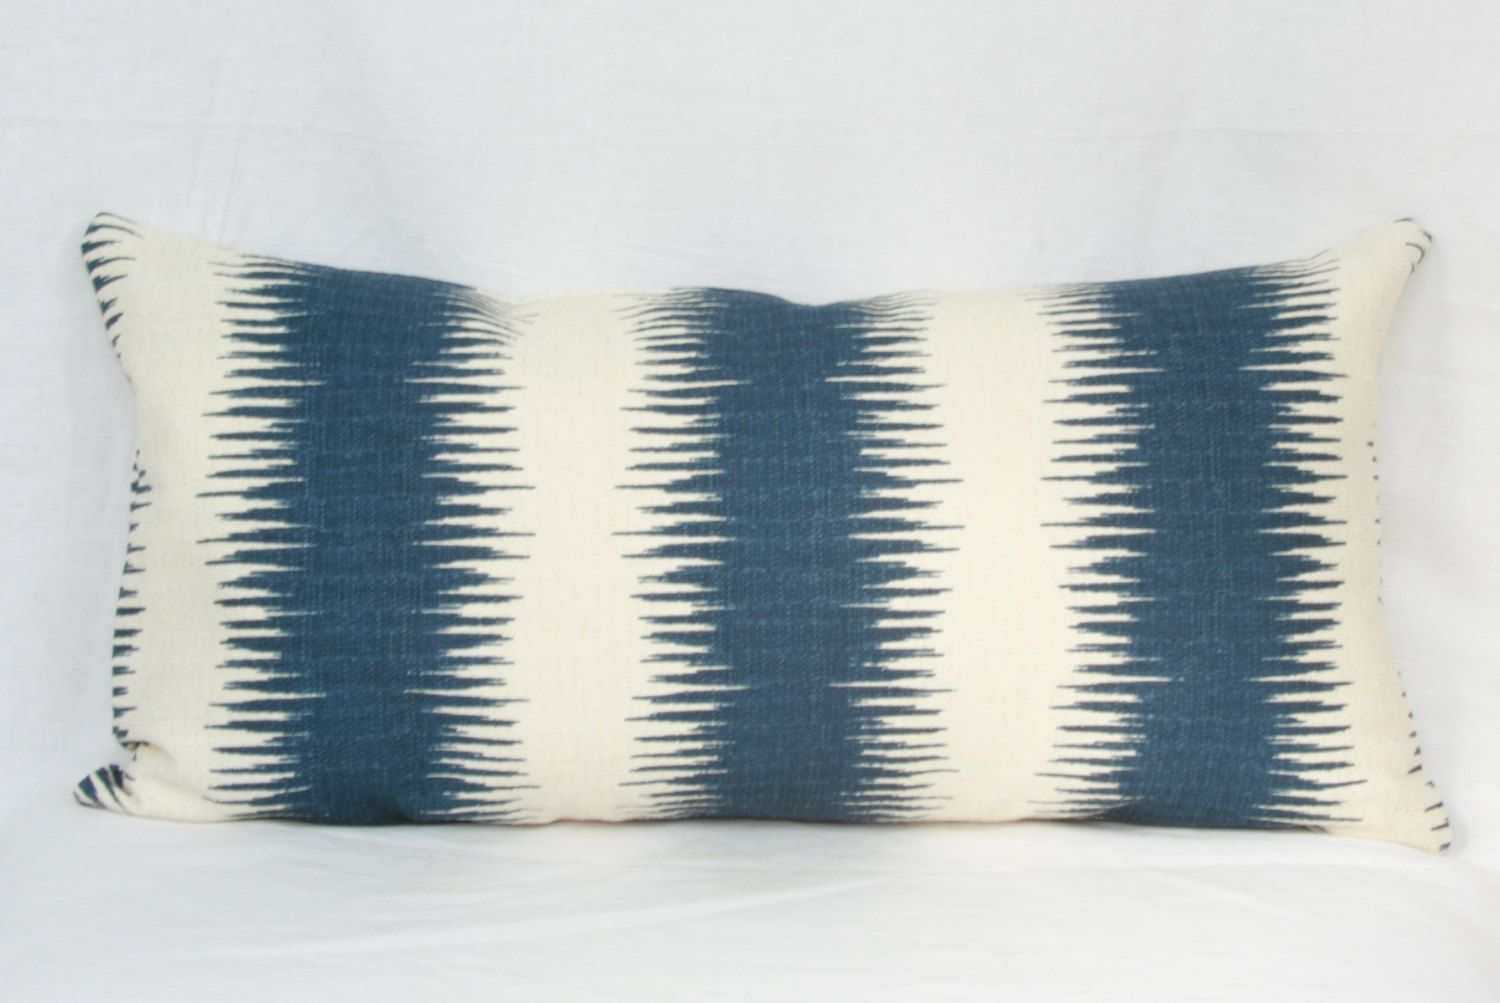 16X26 Pillow Insert Fair Blue Natural Tribal Stripe Throw Pillow Cover 12X20 12X24 14X24 Design Inspiration